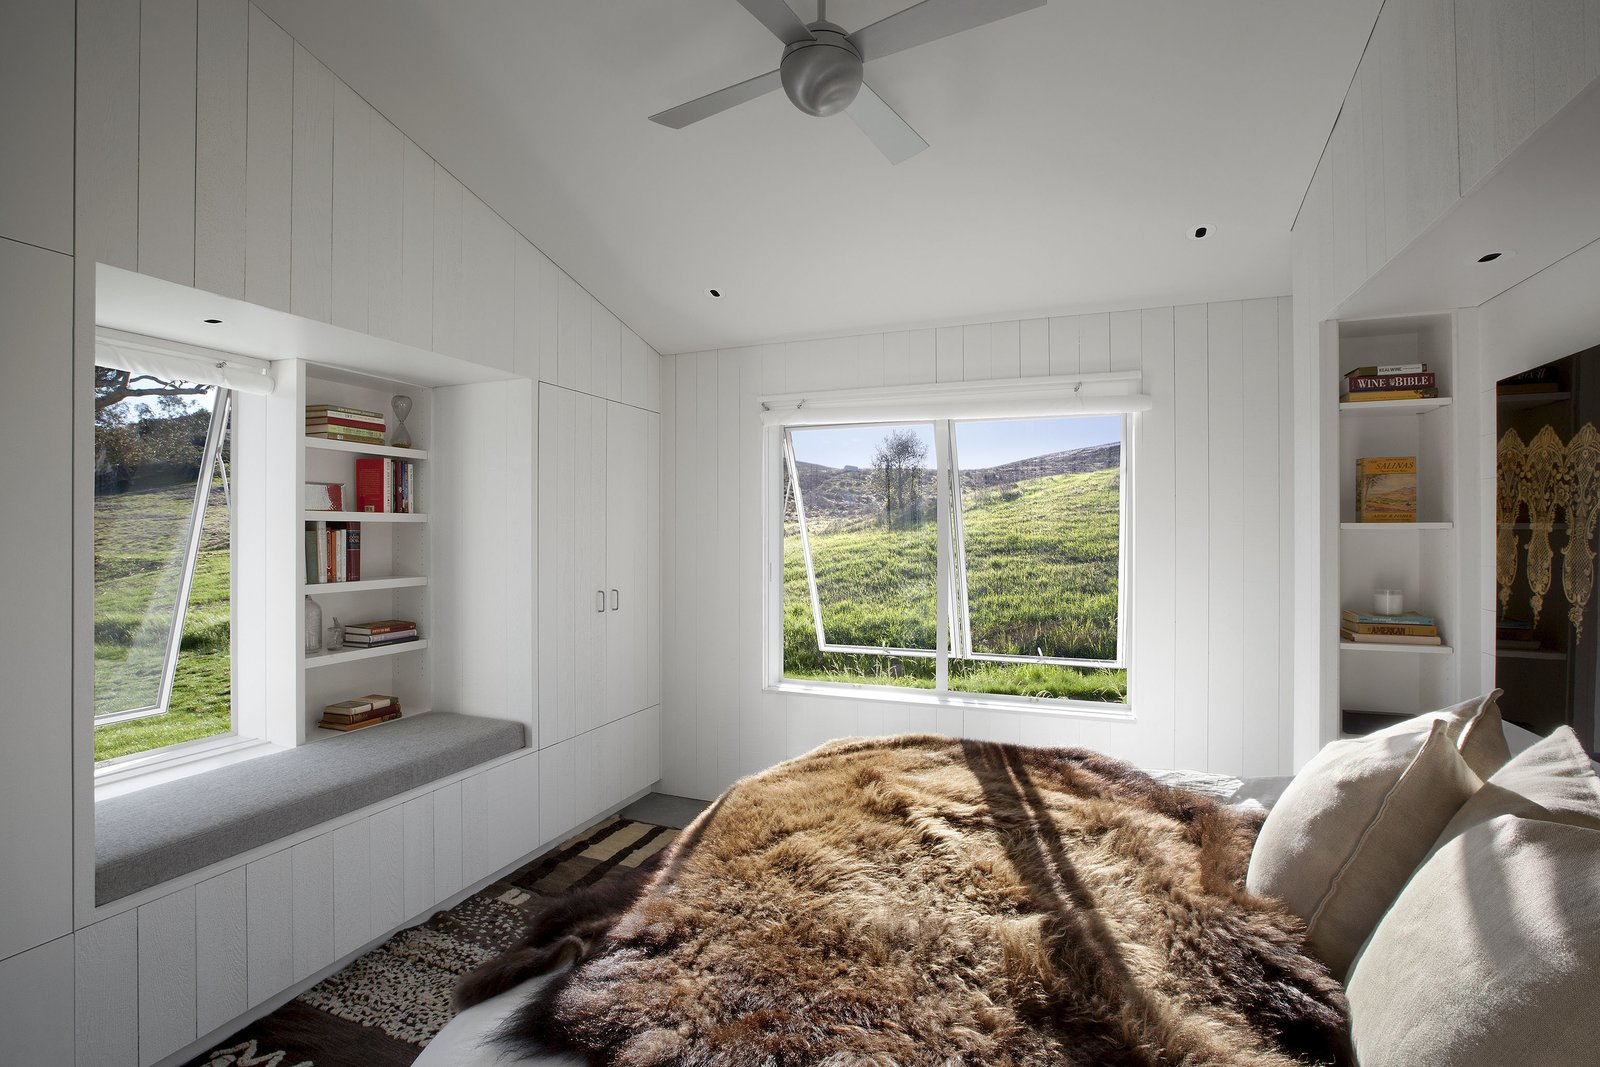 Bedroom and Bed #TurnbullGriffinHaesloop #interior #bedroom #windowseat  Hupomone Ranch by Turnbull Griffin Haesloop Architects